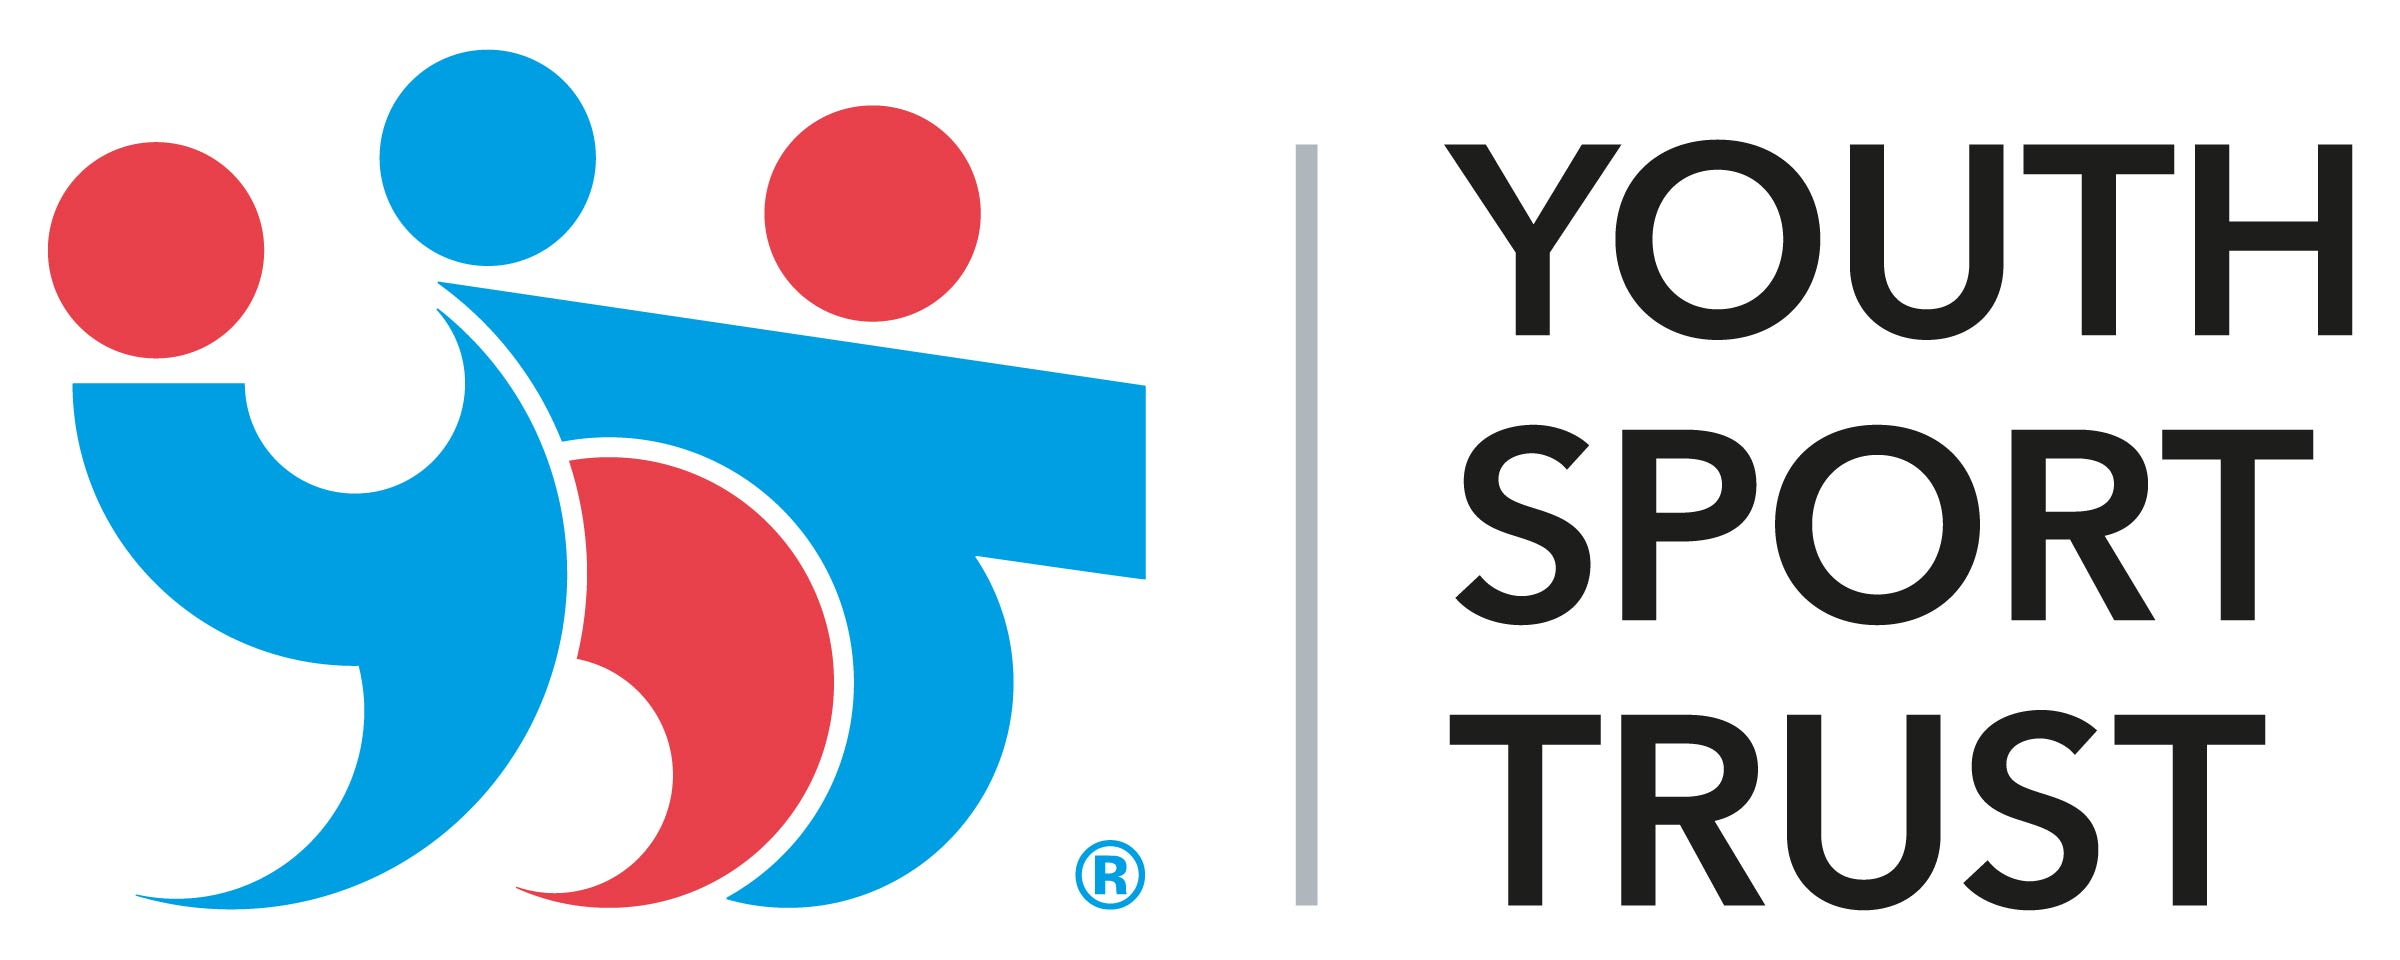 Copy of Youth Sport Trust